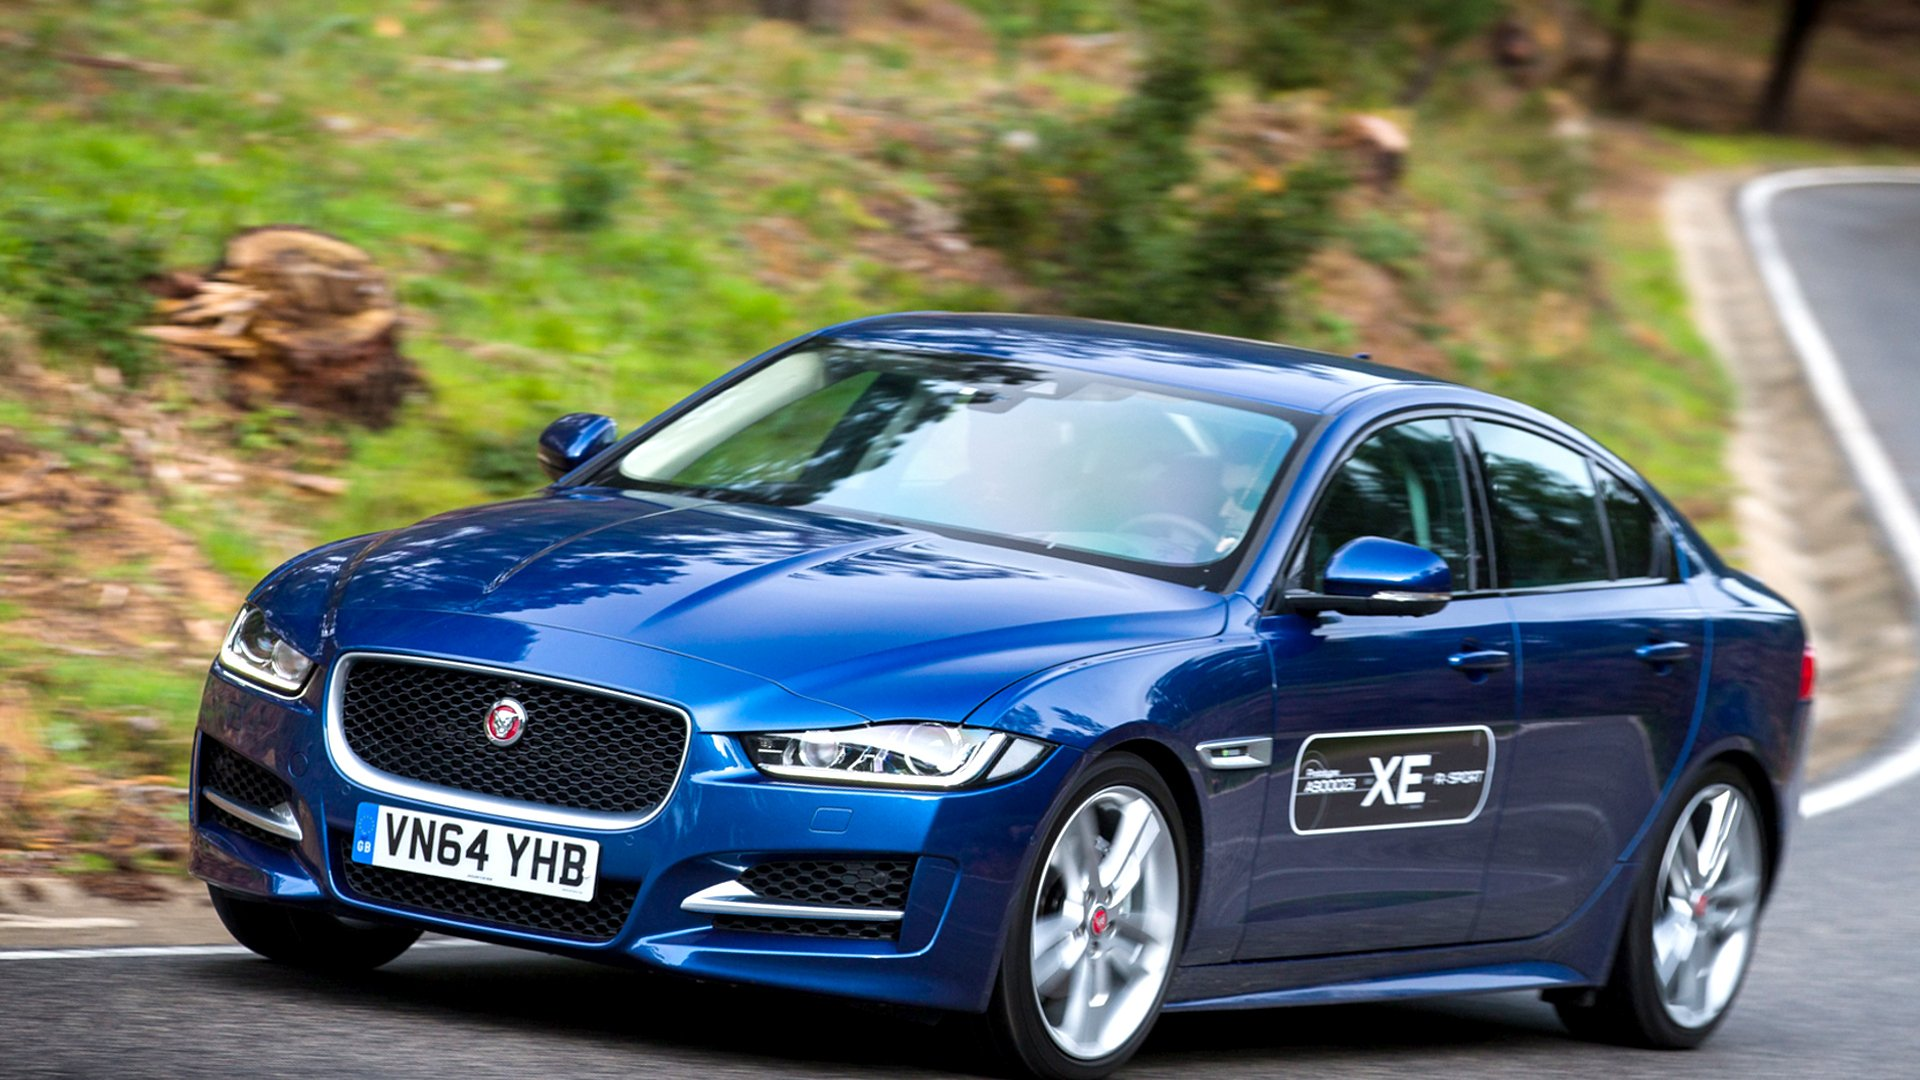 New 2019 Jaguar XE Redesign